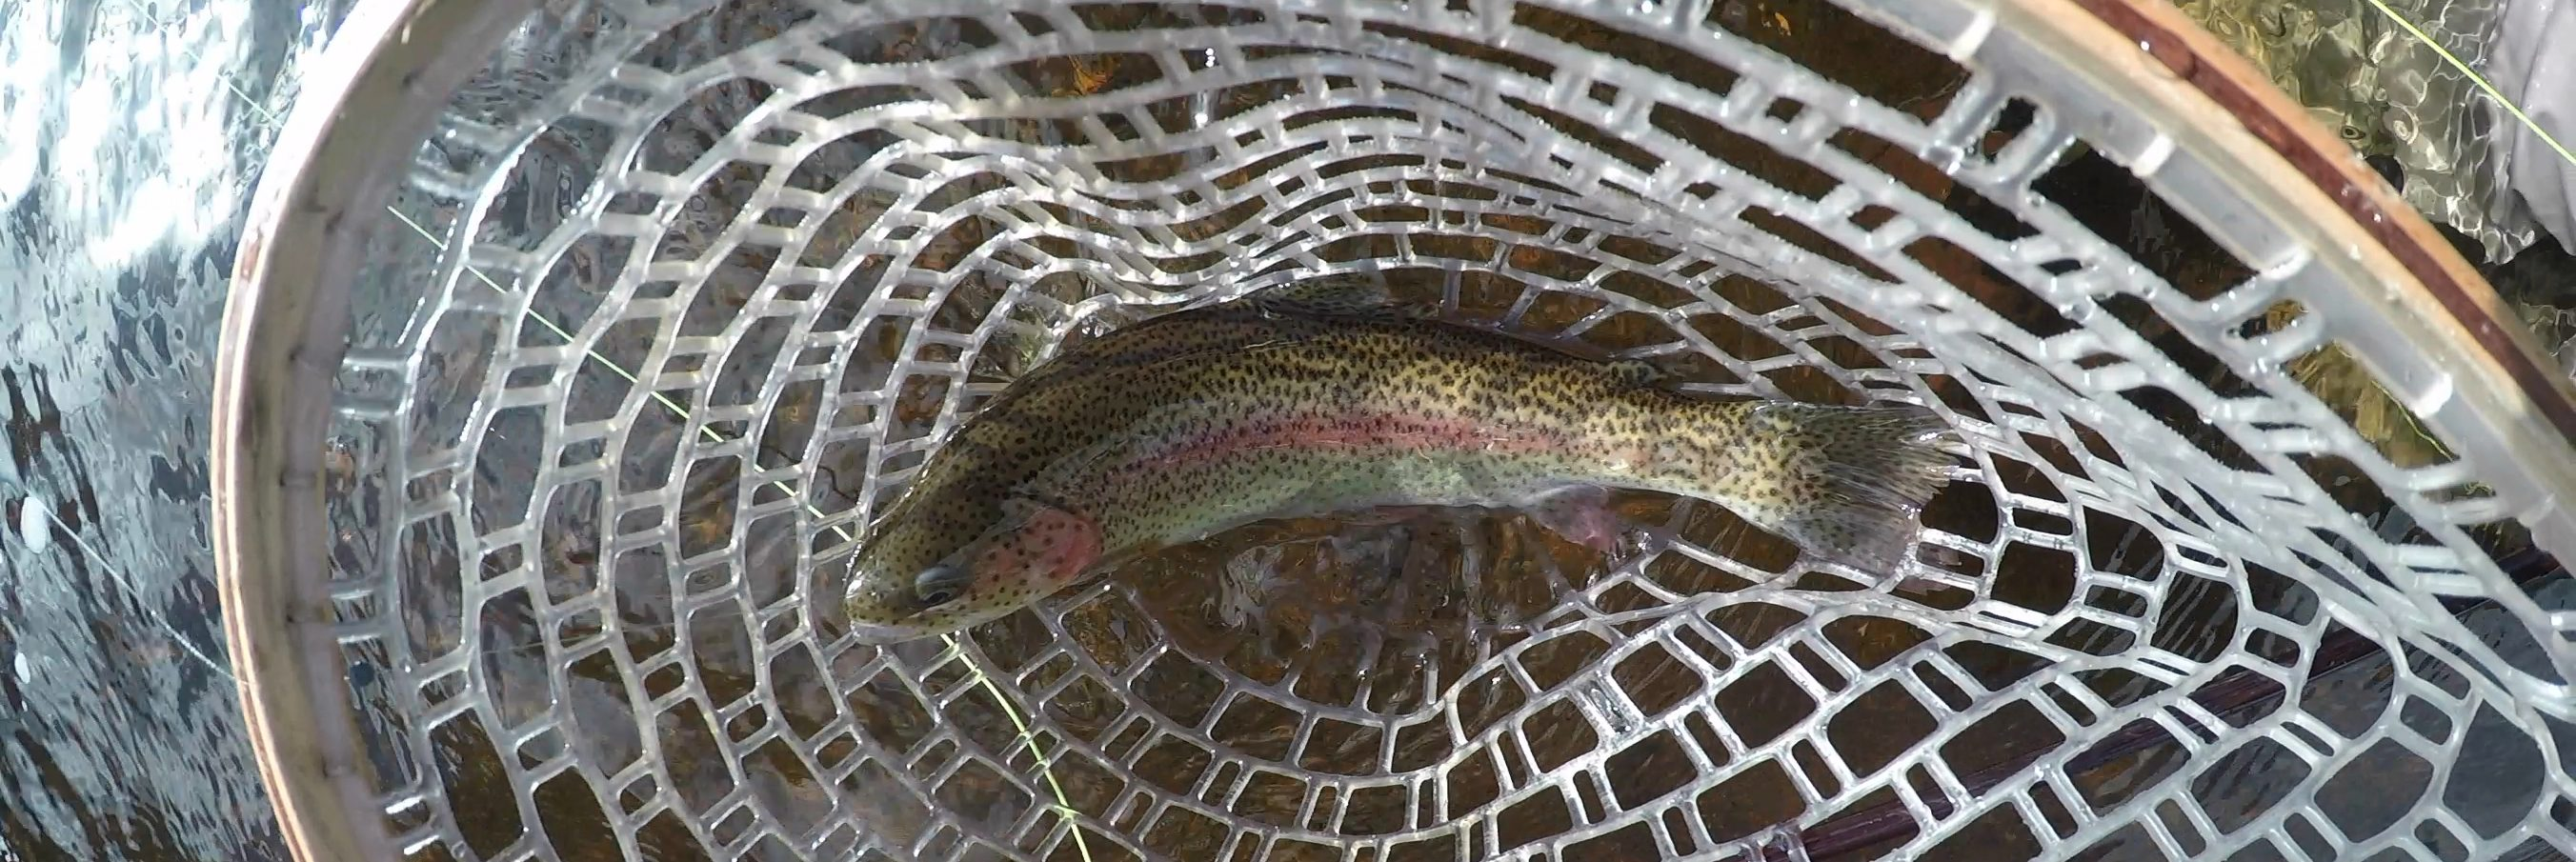 Cut Bow Trout Vs. Rainbow Trout Vs. Cutthroat Trout